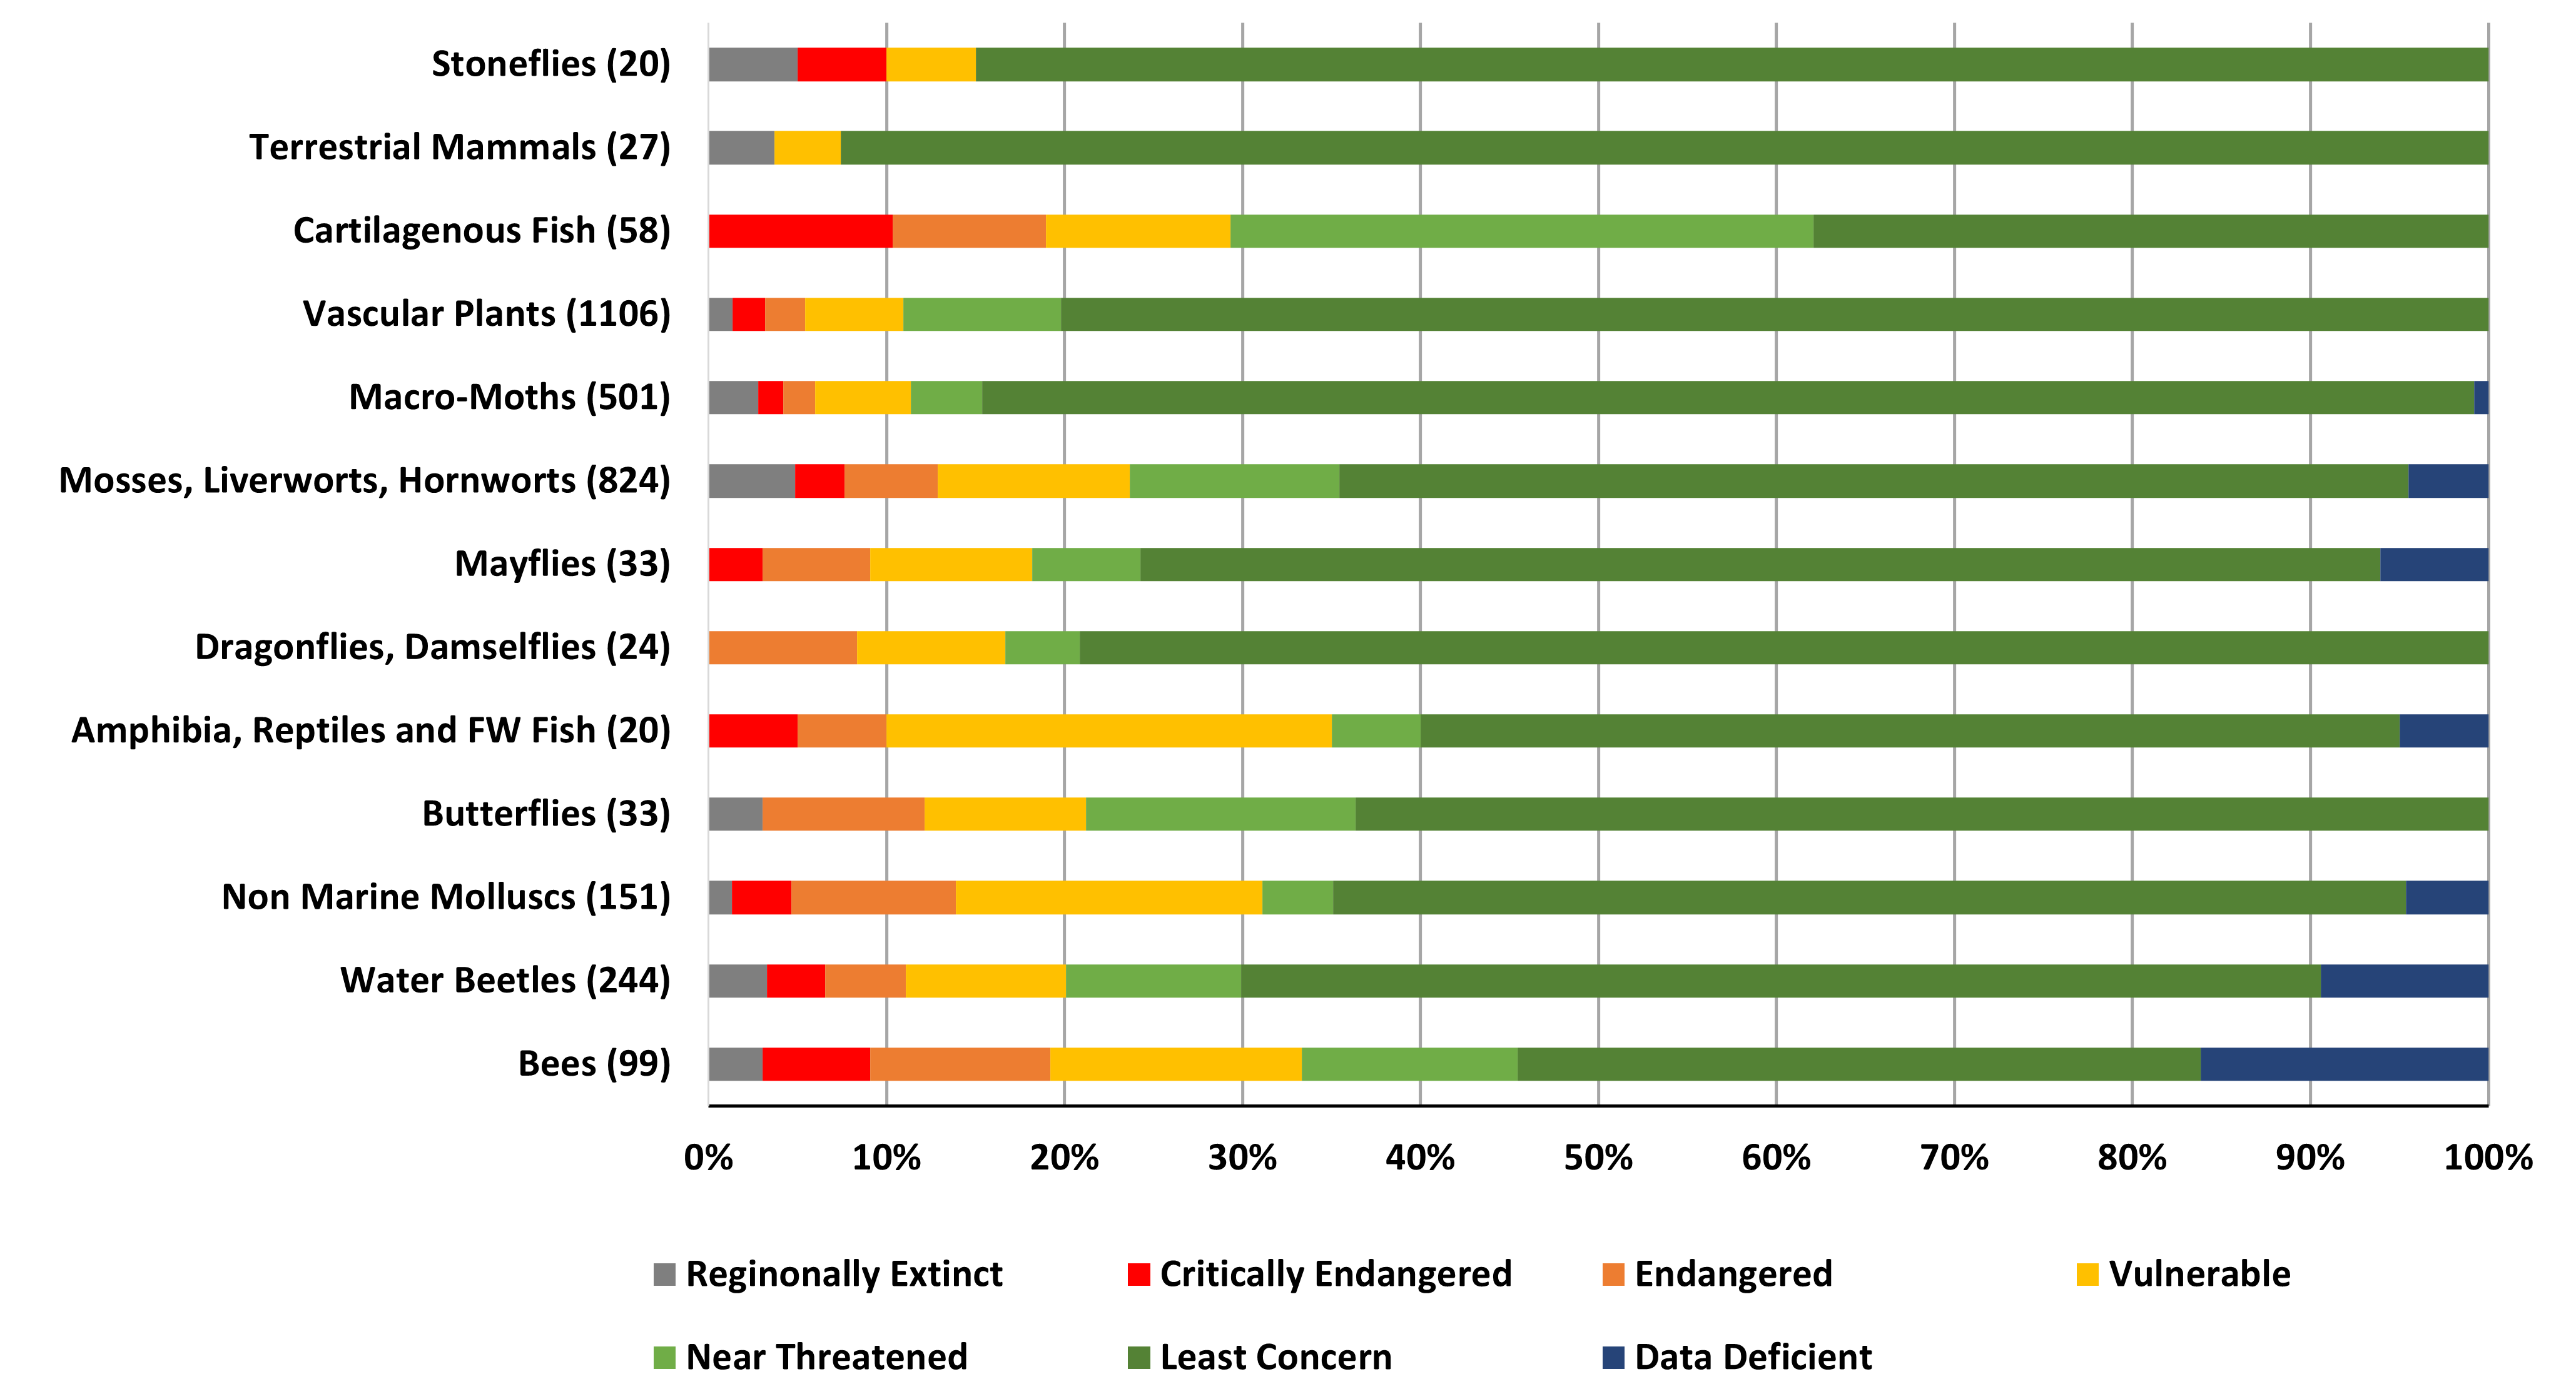 Chart B.5.i._3 Proportion of total species assessed under various IUCN Red List threat categories